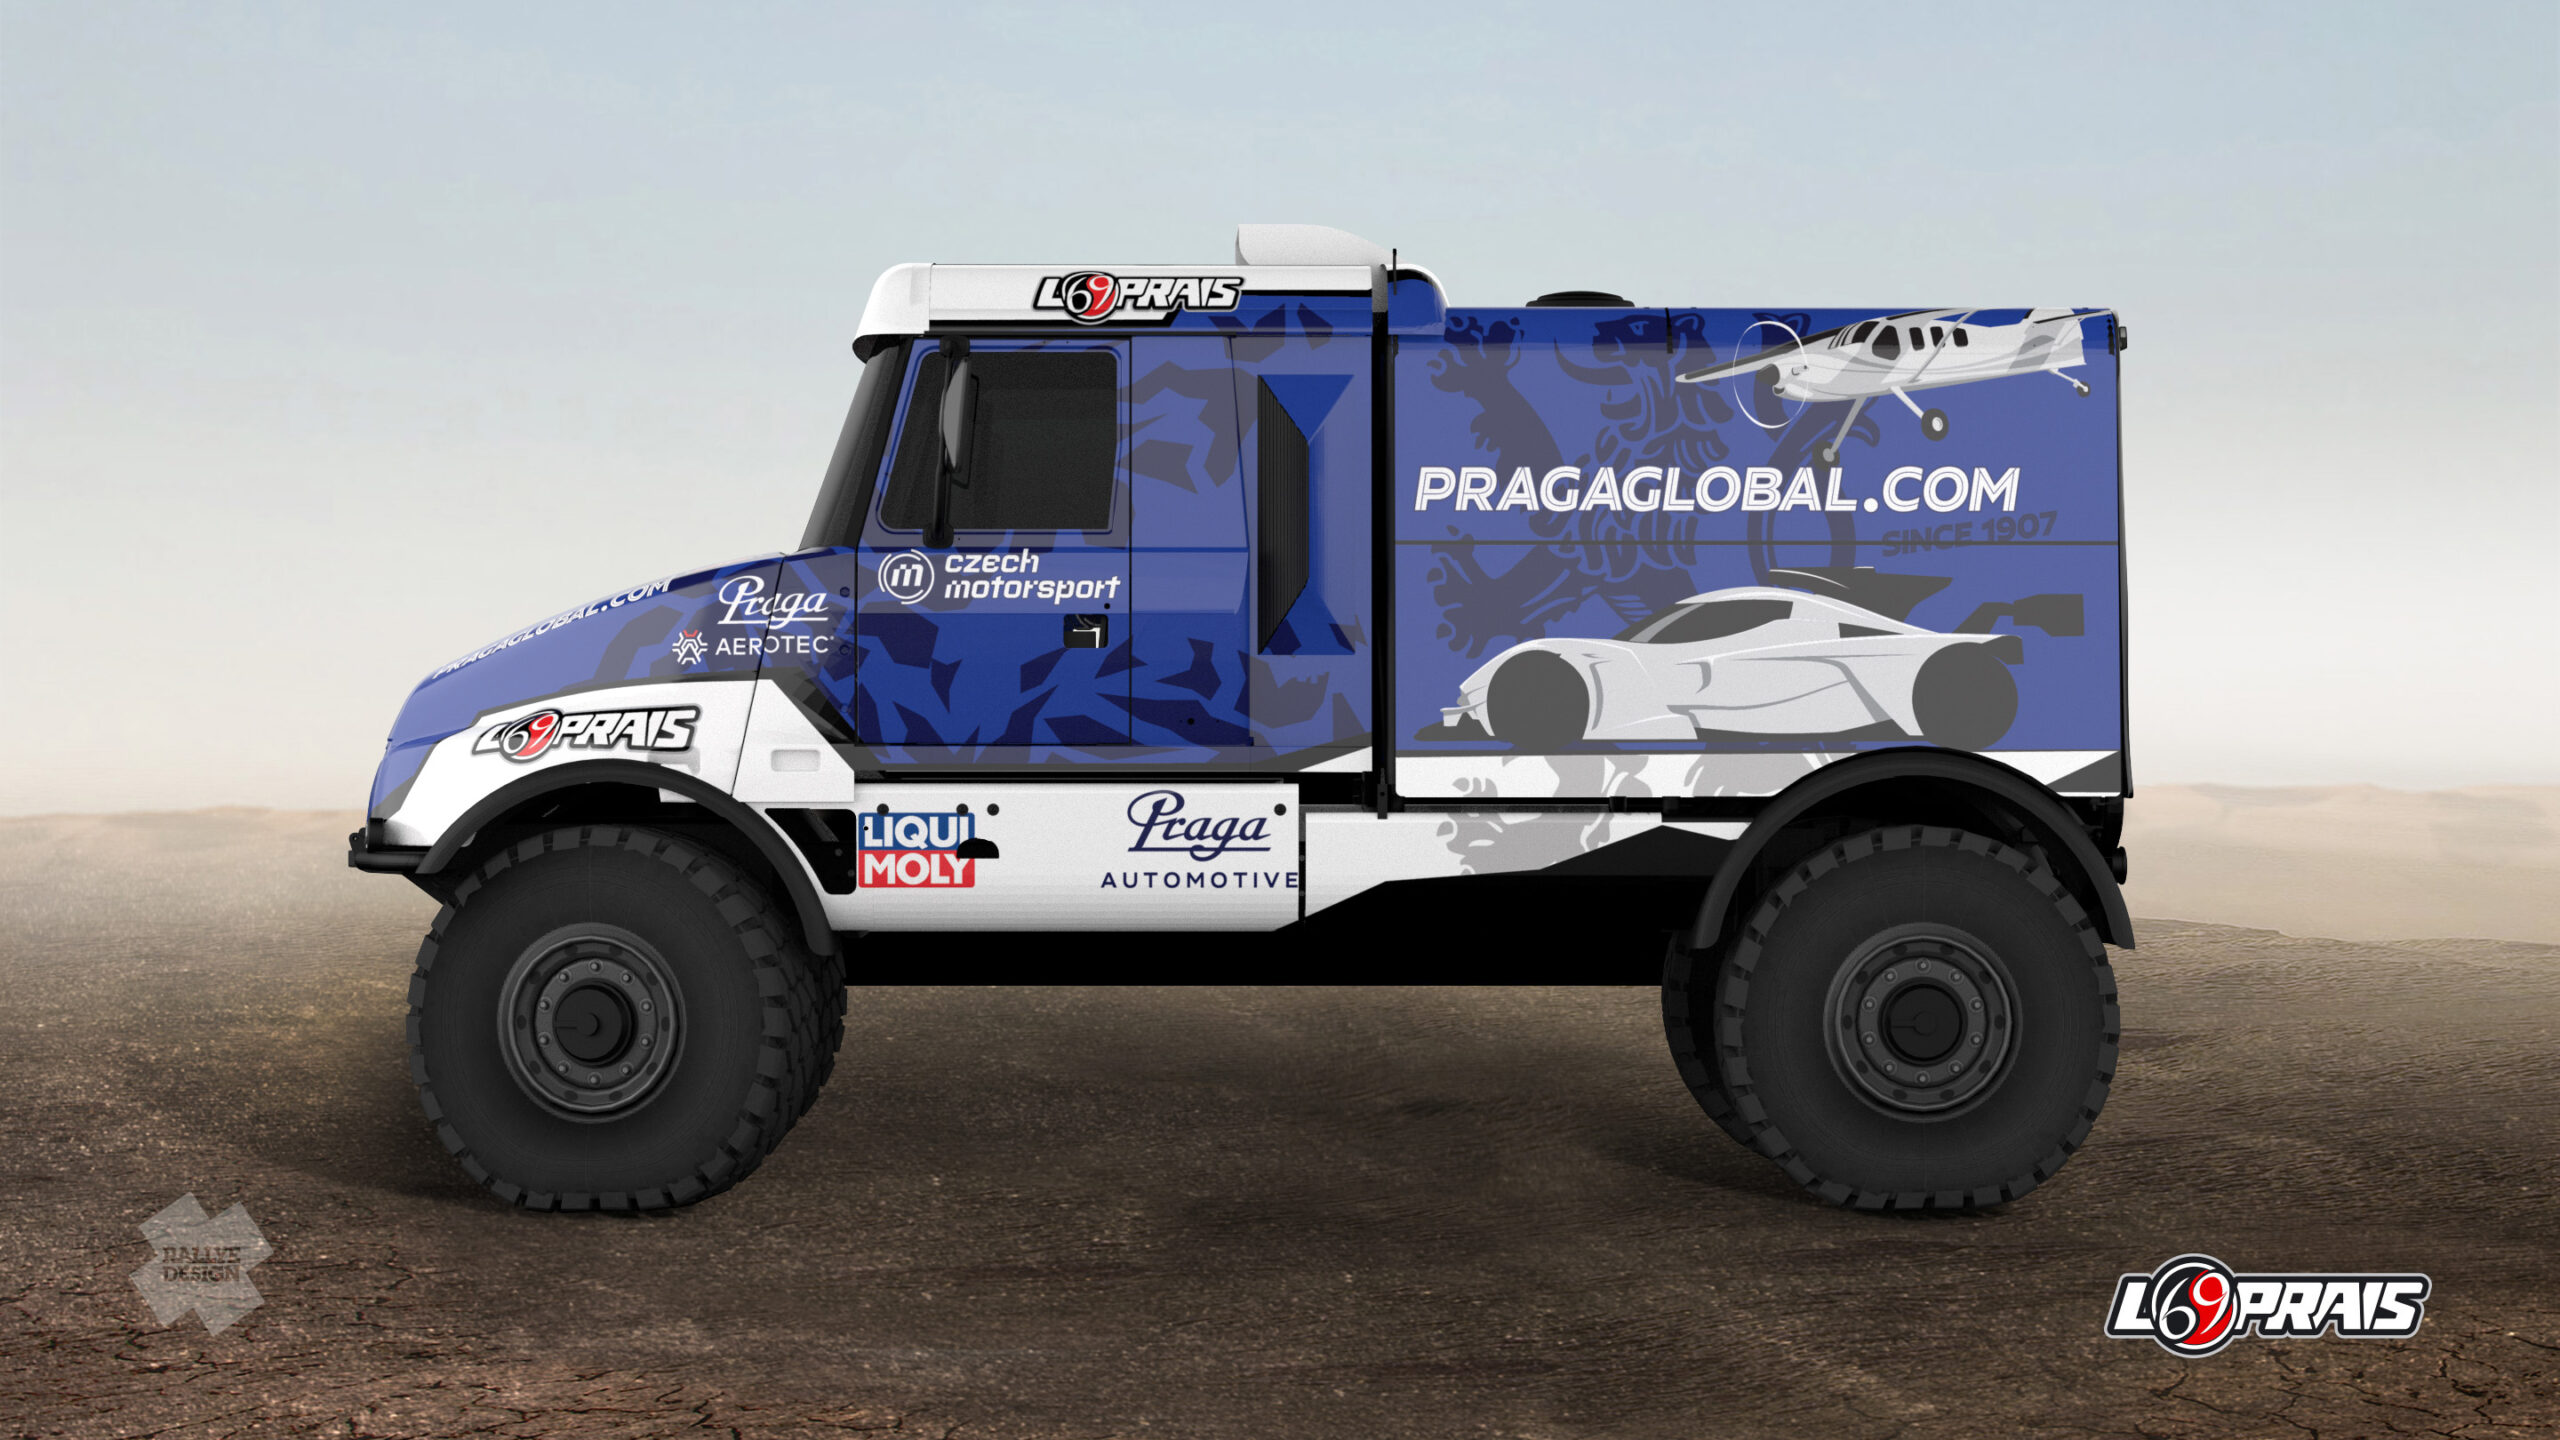 Instaforex Loprais Praga Team to race at Dakar Rally 2021 with two trucks